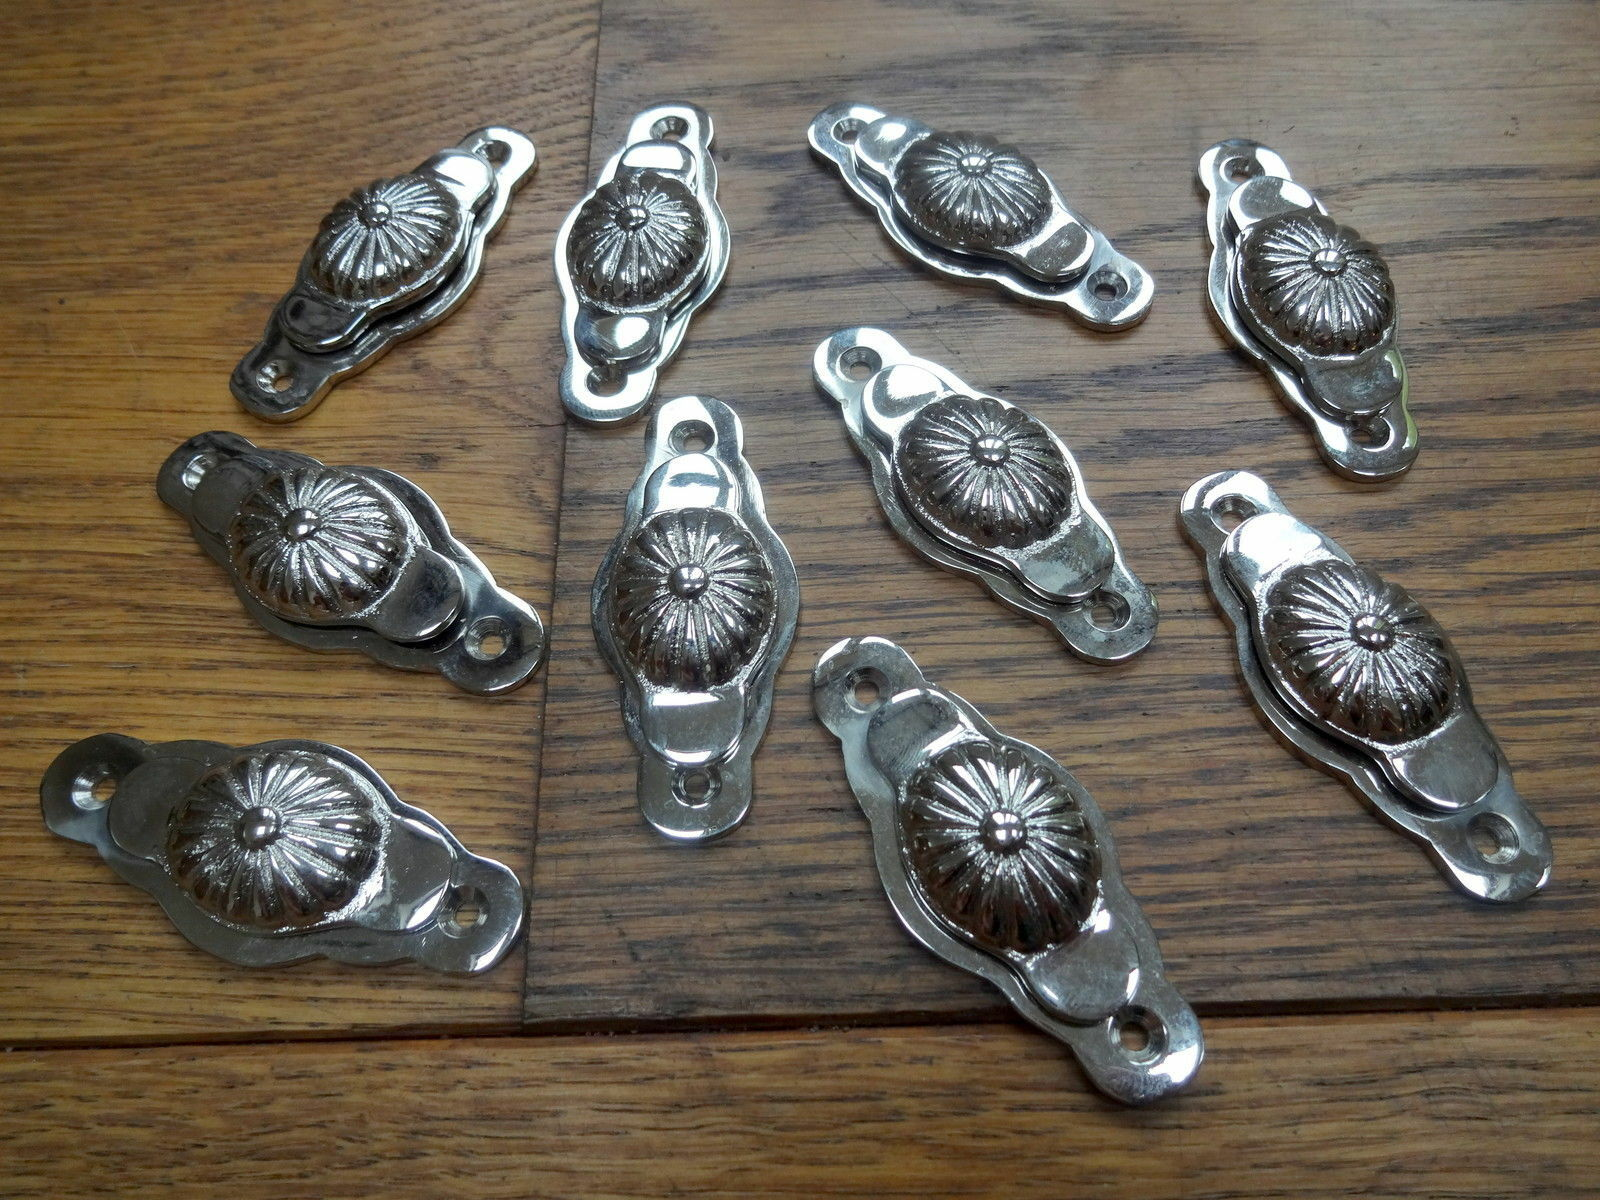 10 X Chrome Or Nickel Escutcheons Door Key Hole Covers